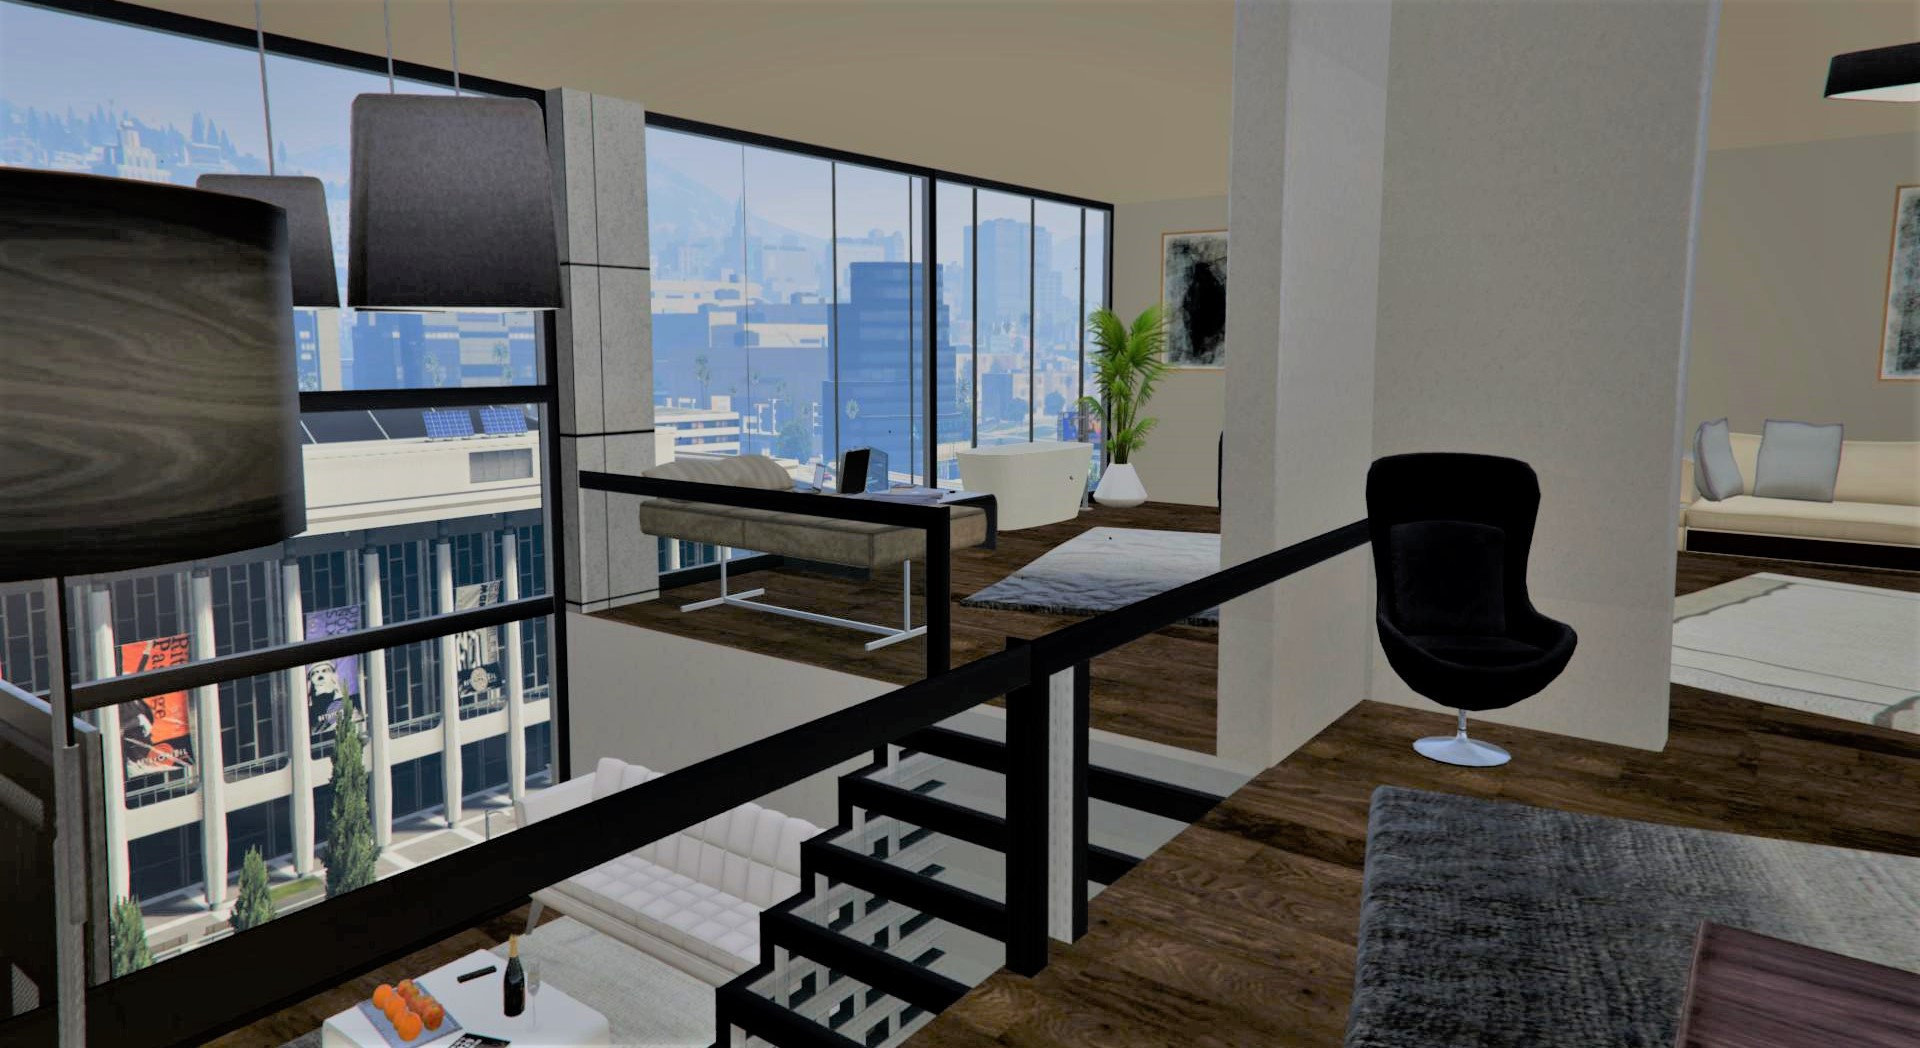 Apartment Office apartment/office [menyoo] - gta5-mods